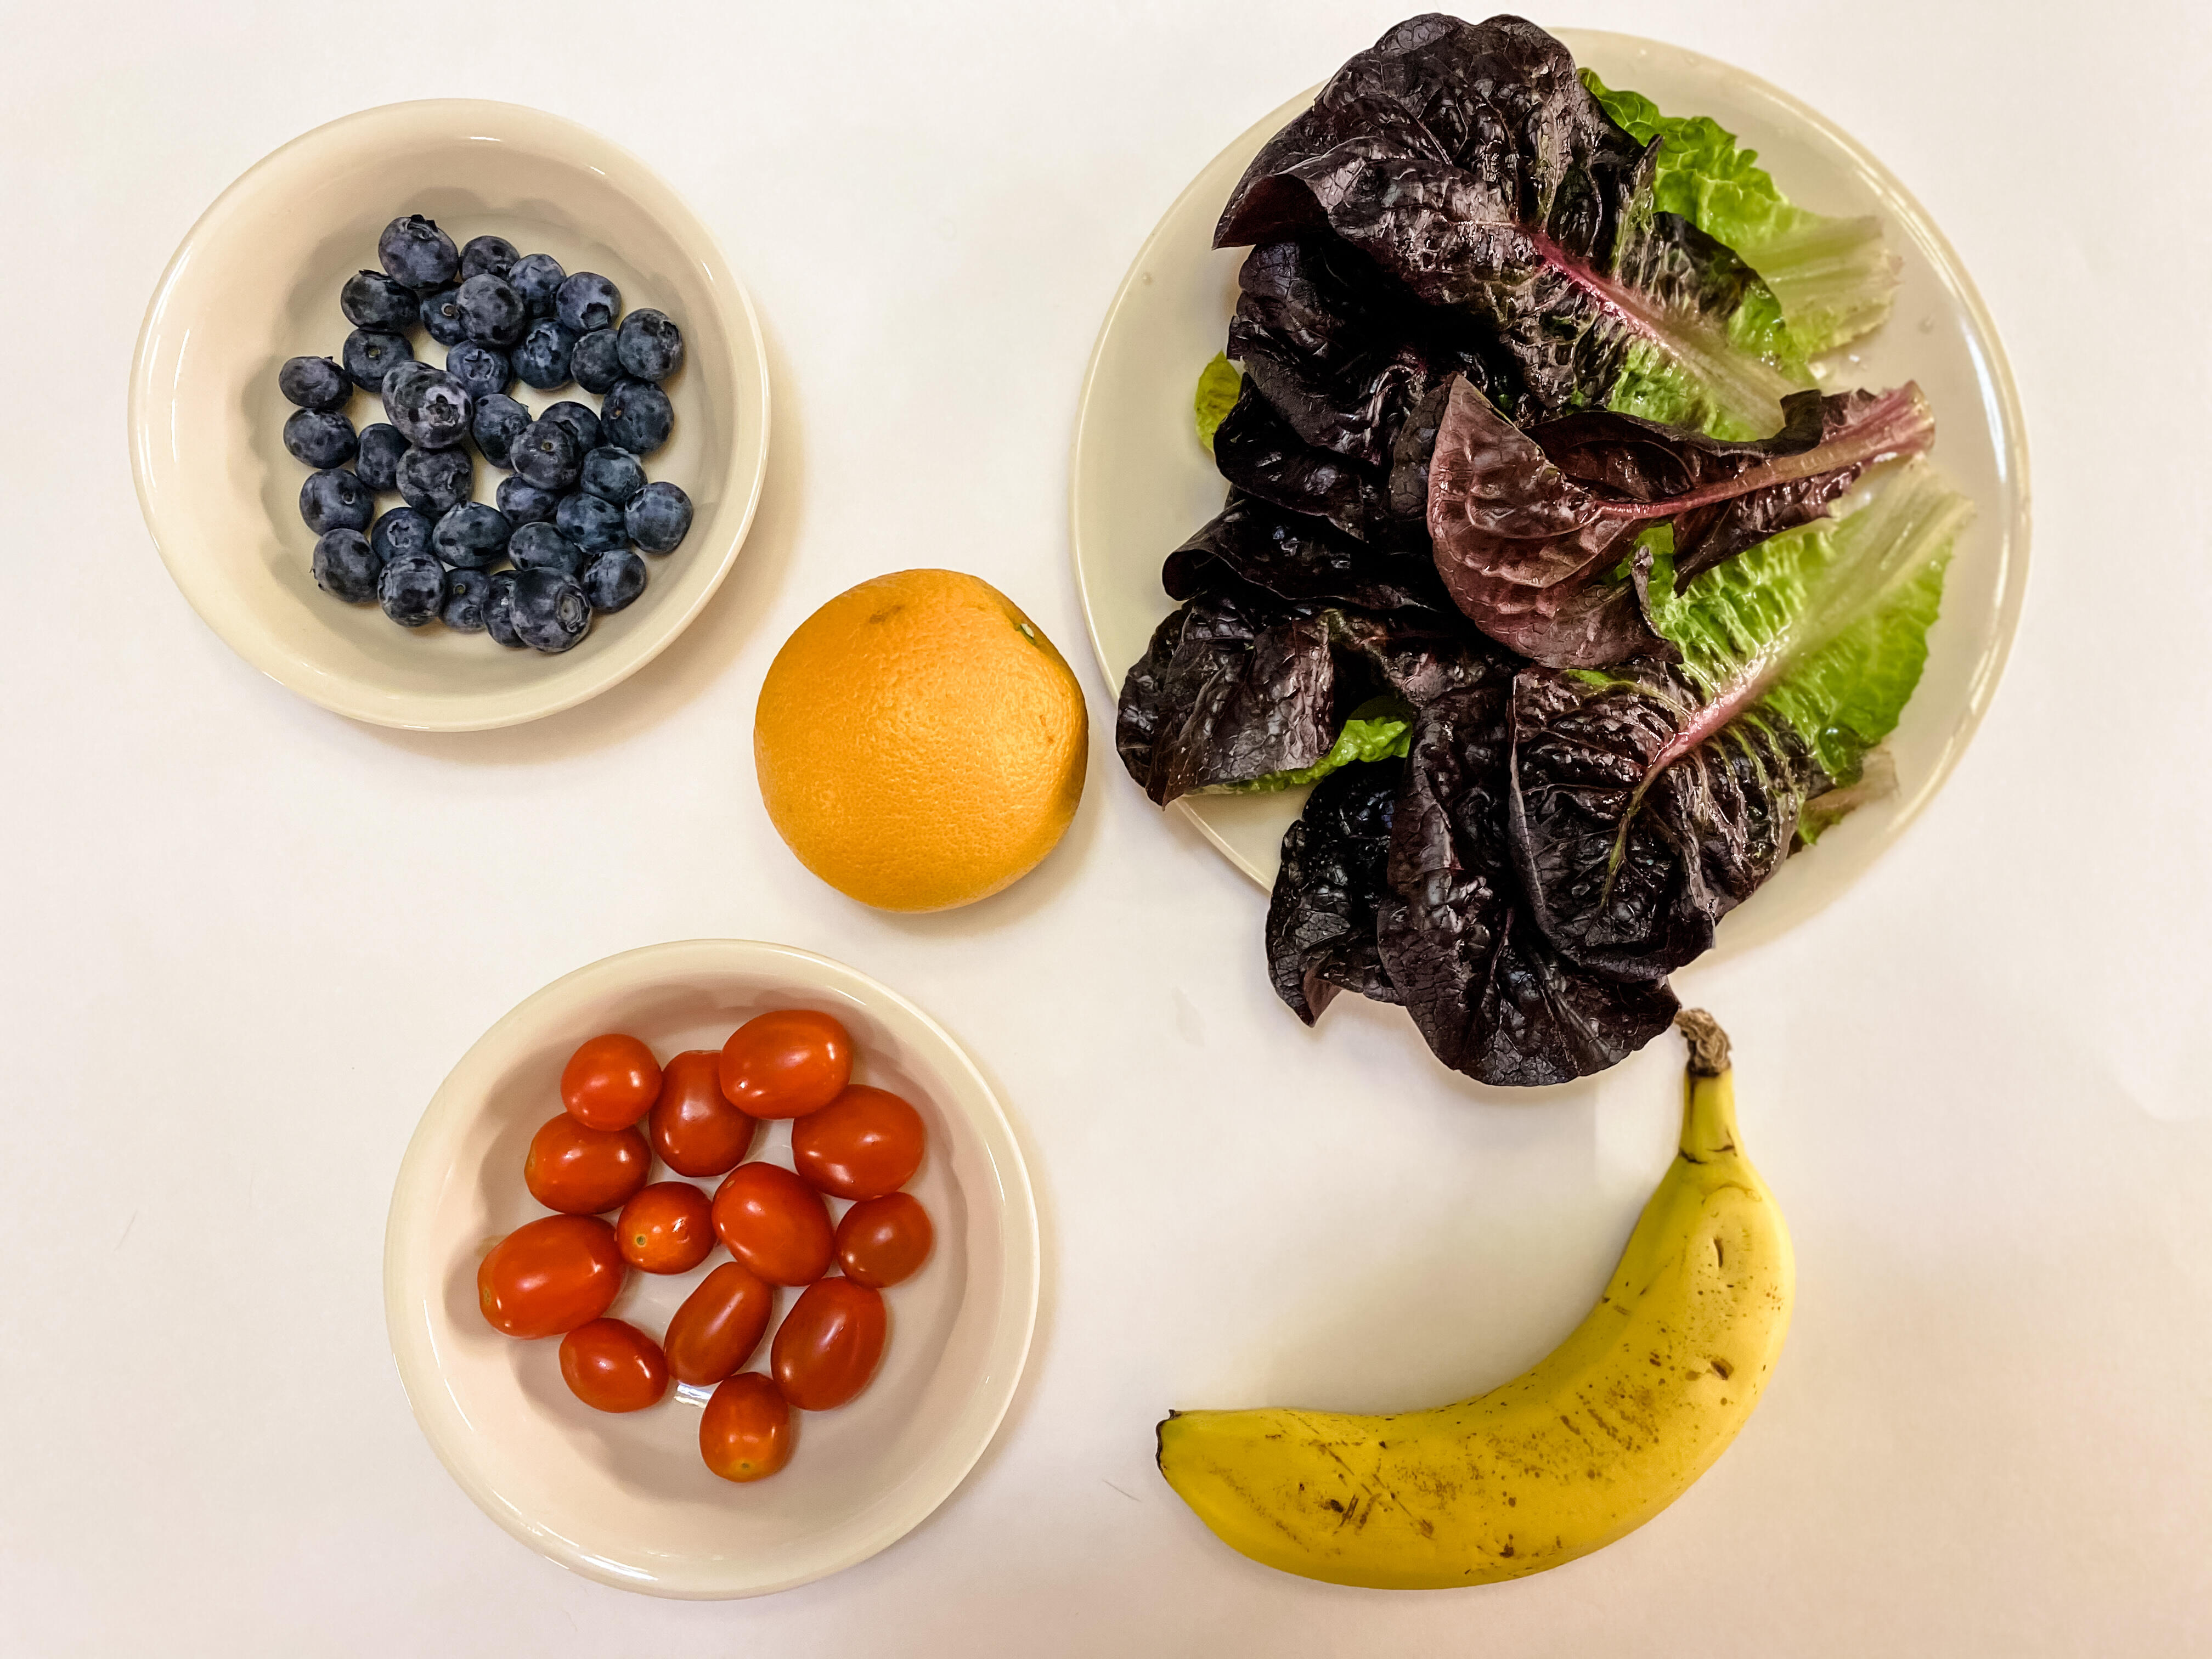 Five servings of produce: a cup of lettuce, a medium banana, an orange, half a cup of cherry tomatoes, and half a cup of blueberries